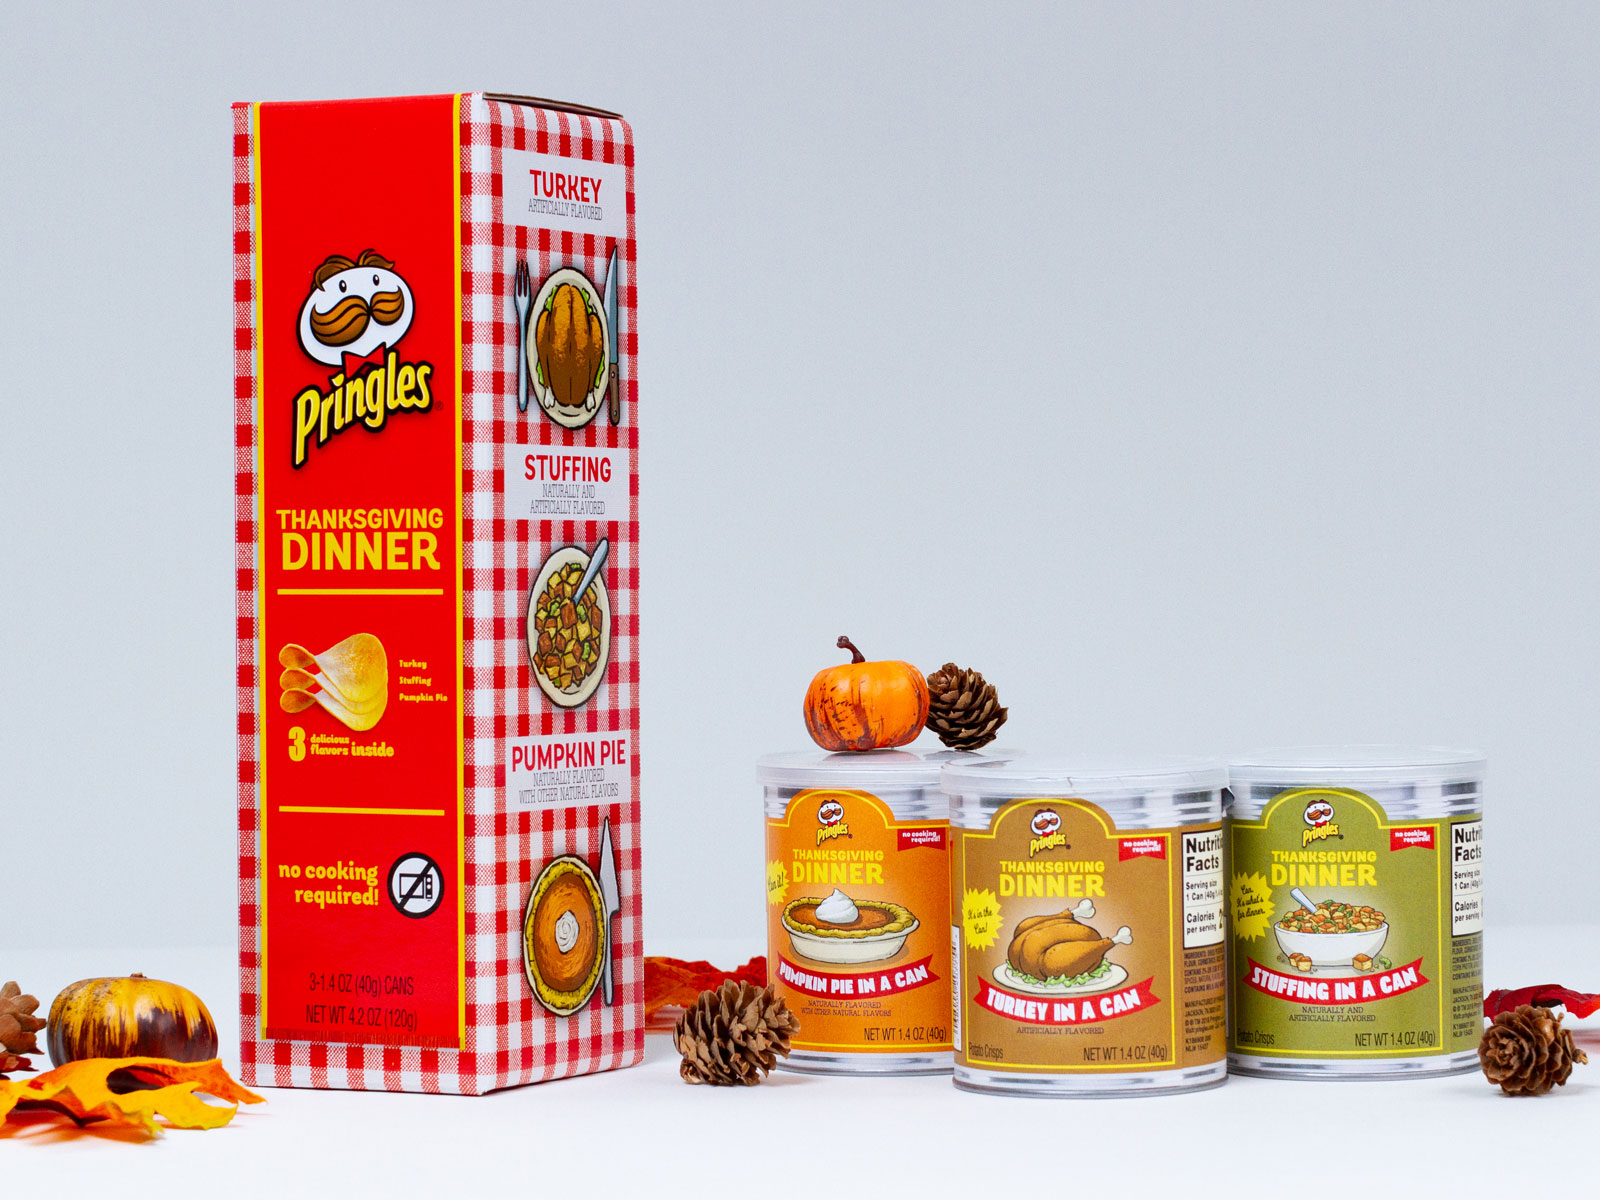 Pringles Thanksgiving Dinner Flavors Are Available to the Public This Year